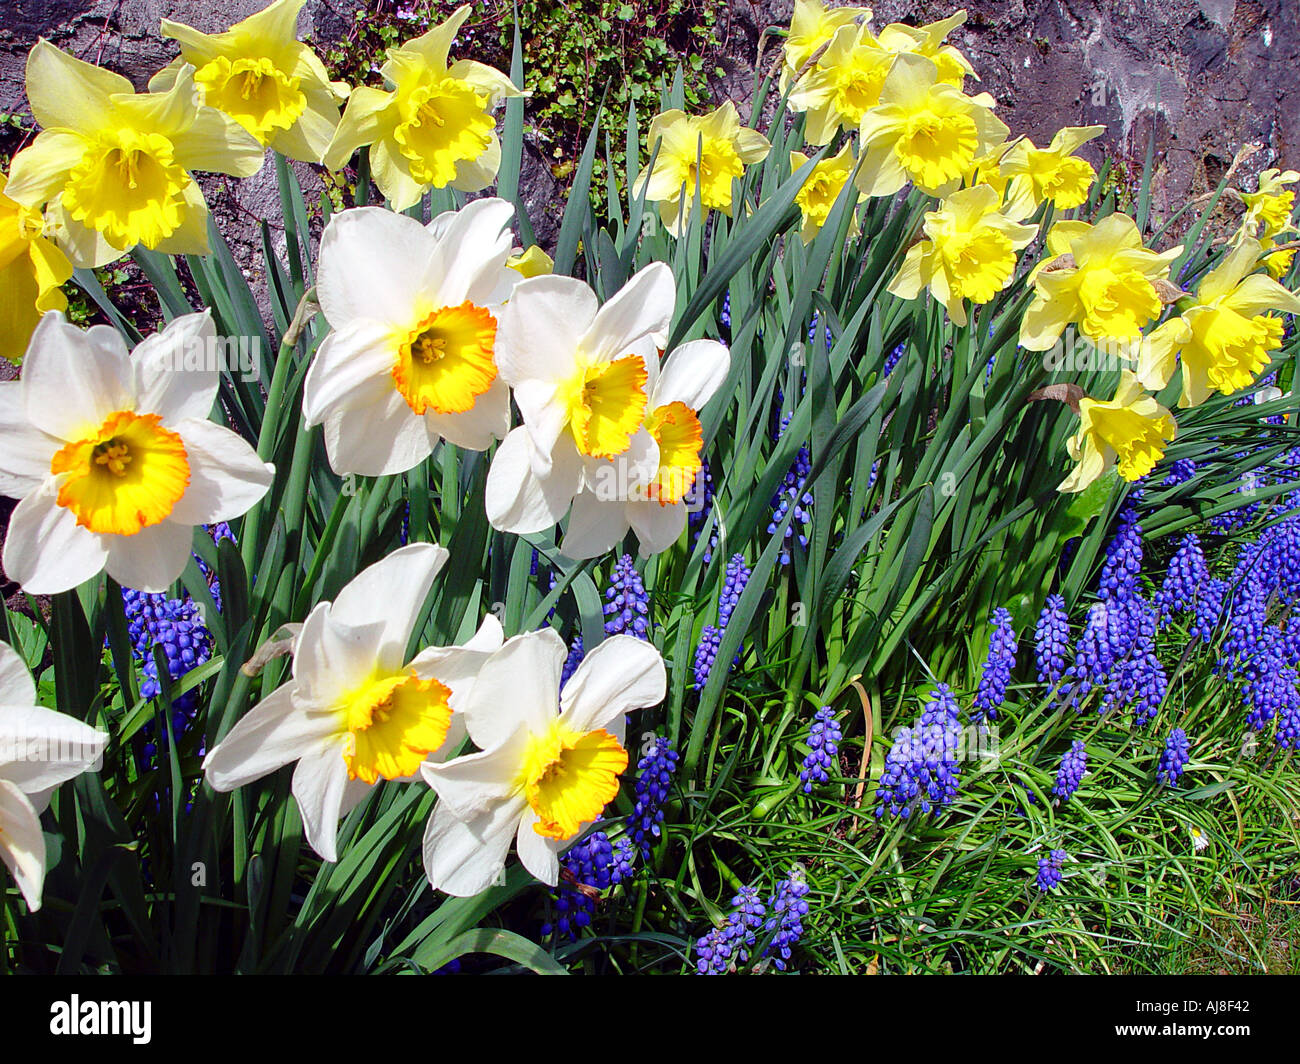 Daffodils And Spring Flowers Easter Scene Stock Photo 1216321 Alamy